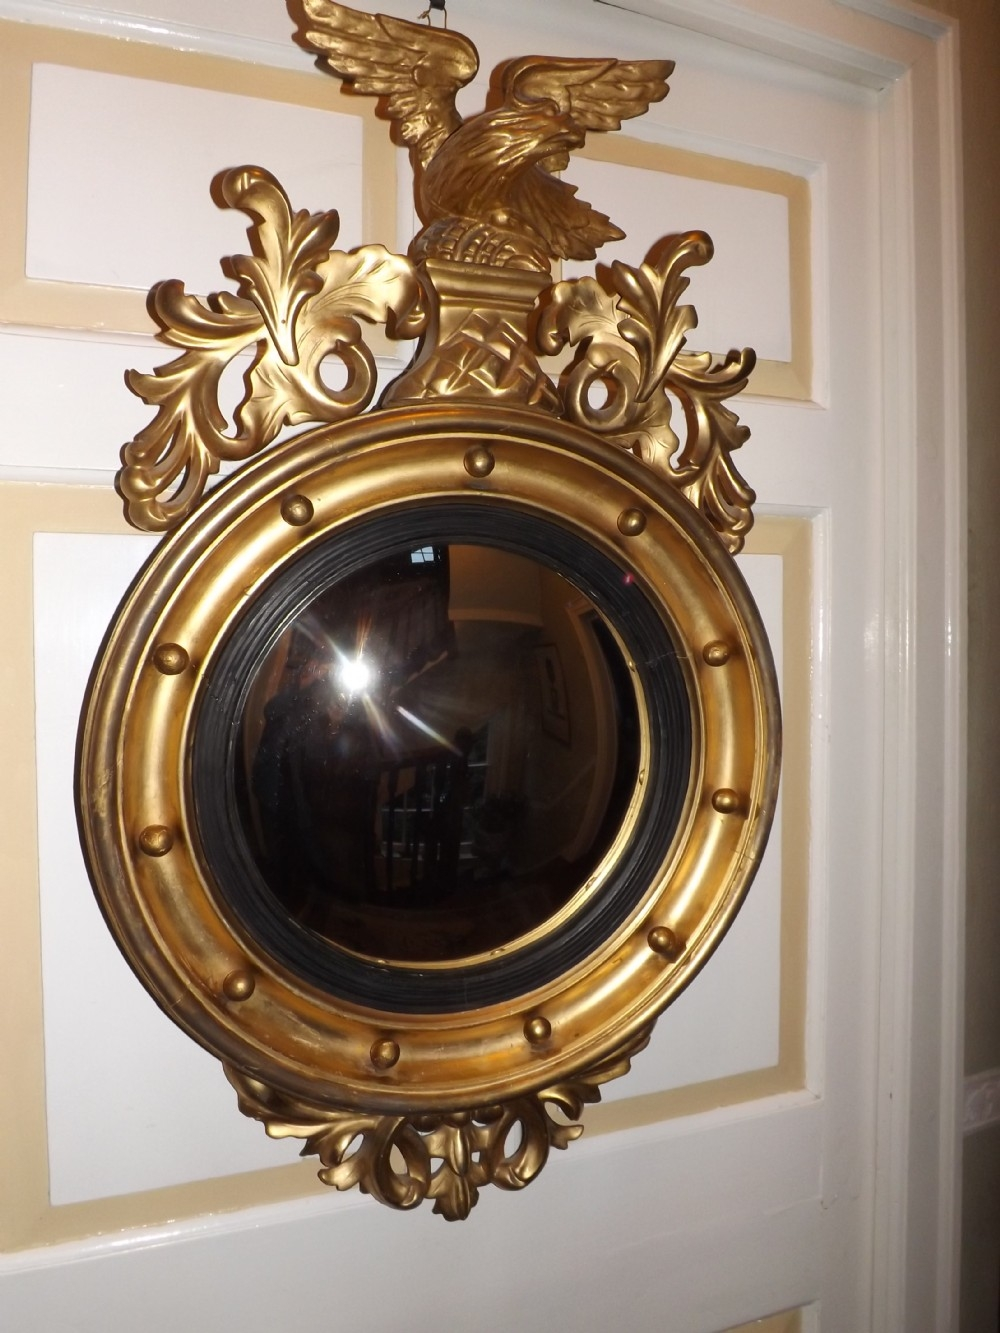 C19th Regency Period Gilt Wood Framed Convex Wall Mirror 307973 With Convex Wall Mirrors (View 14 of 15)